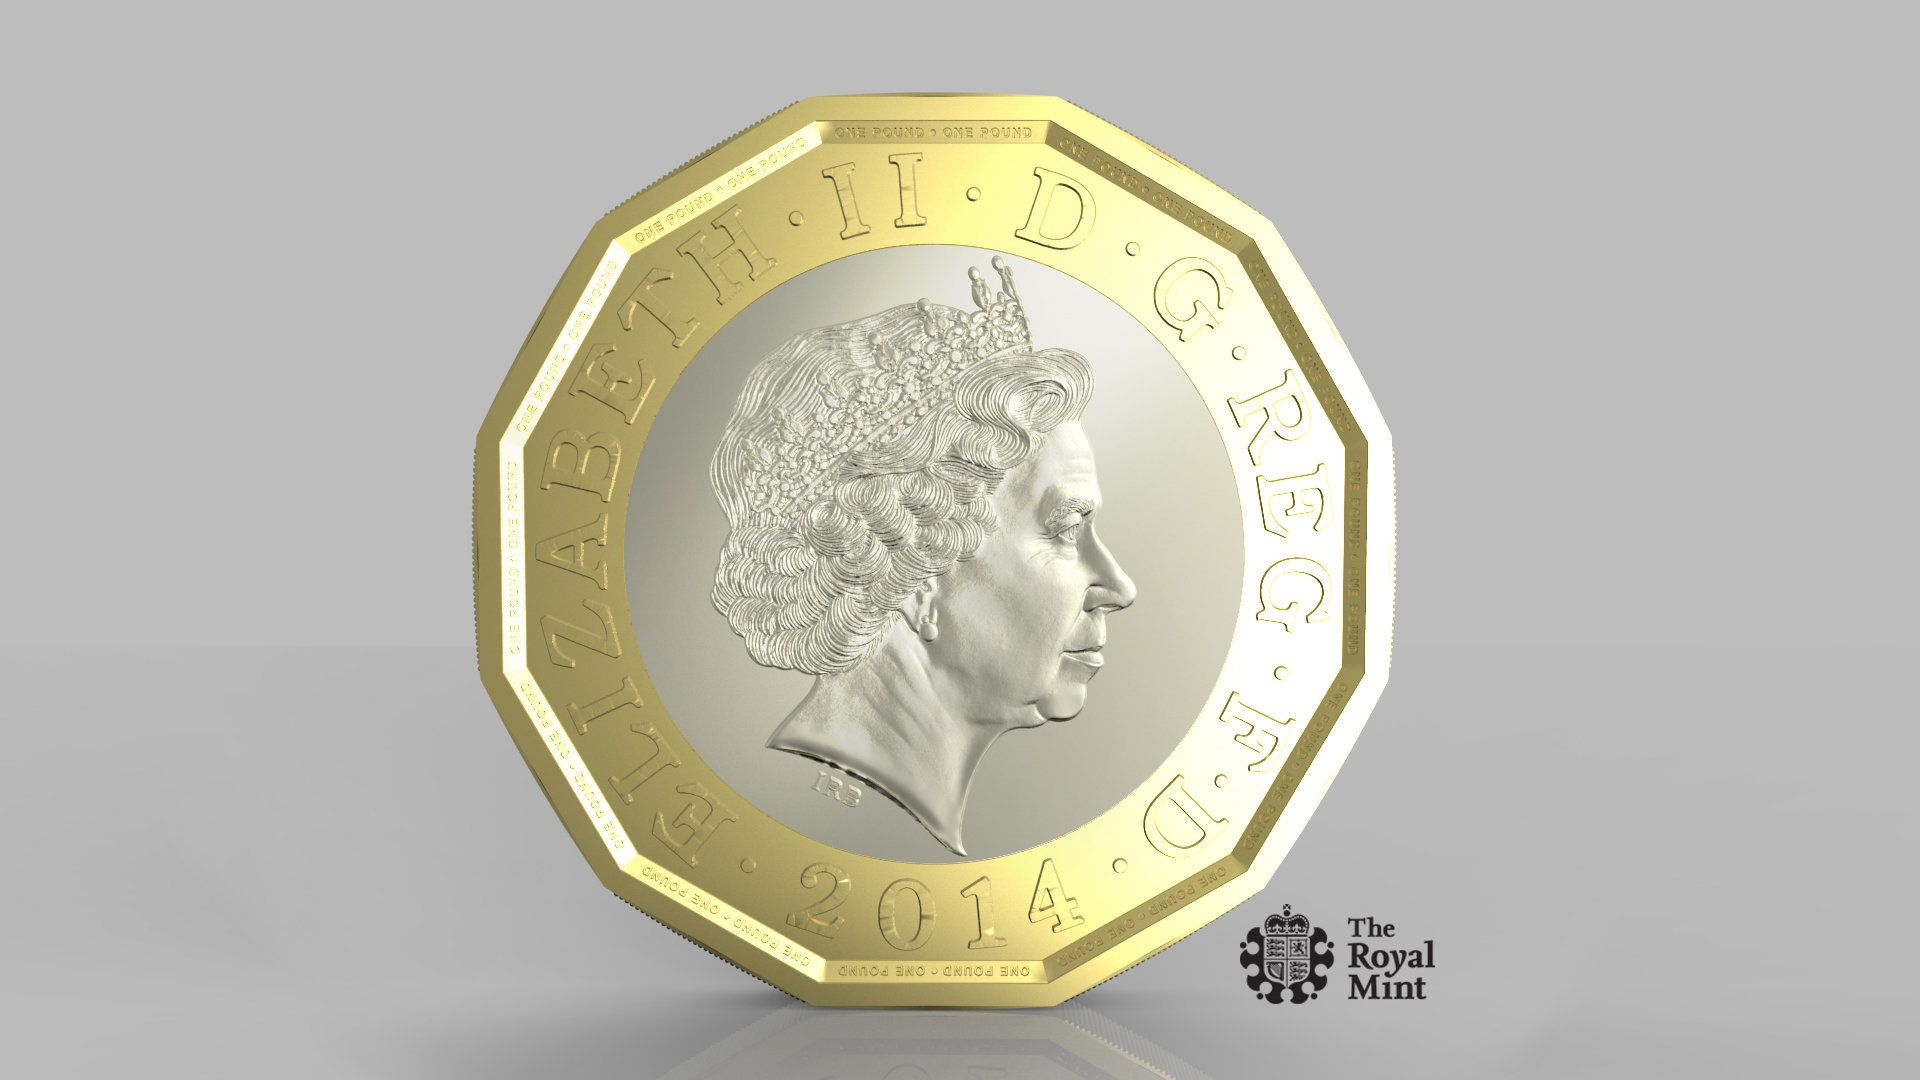 The new design for the pound